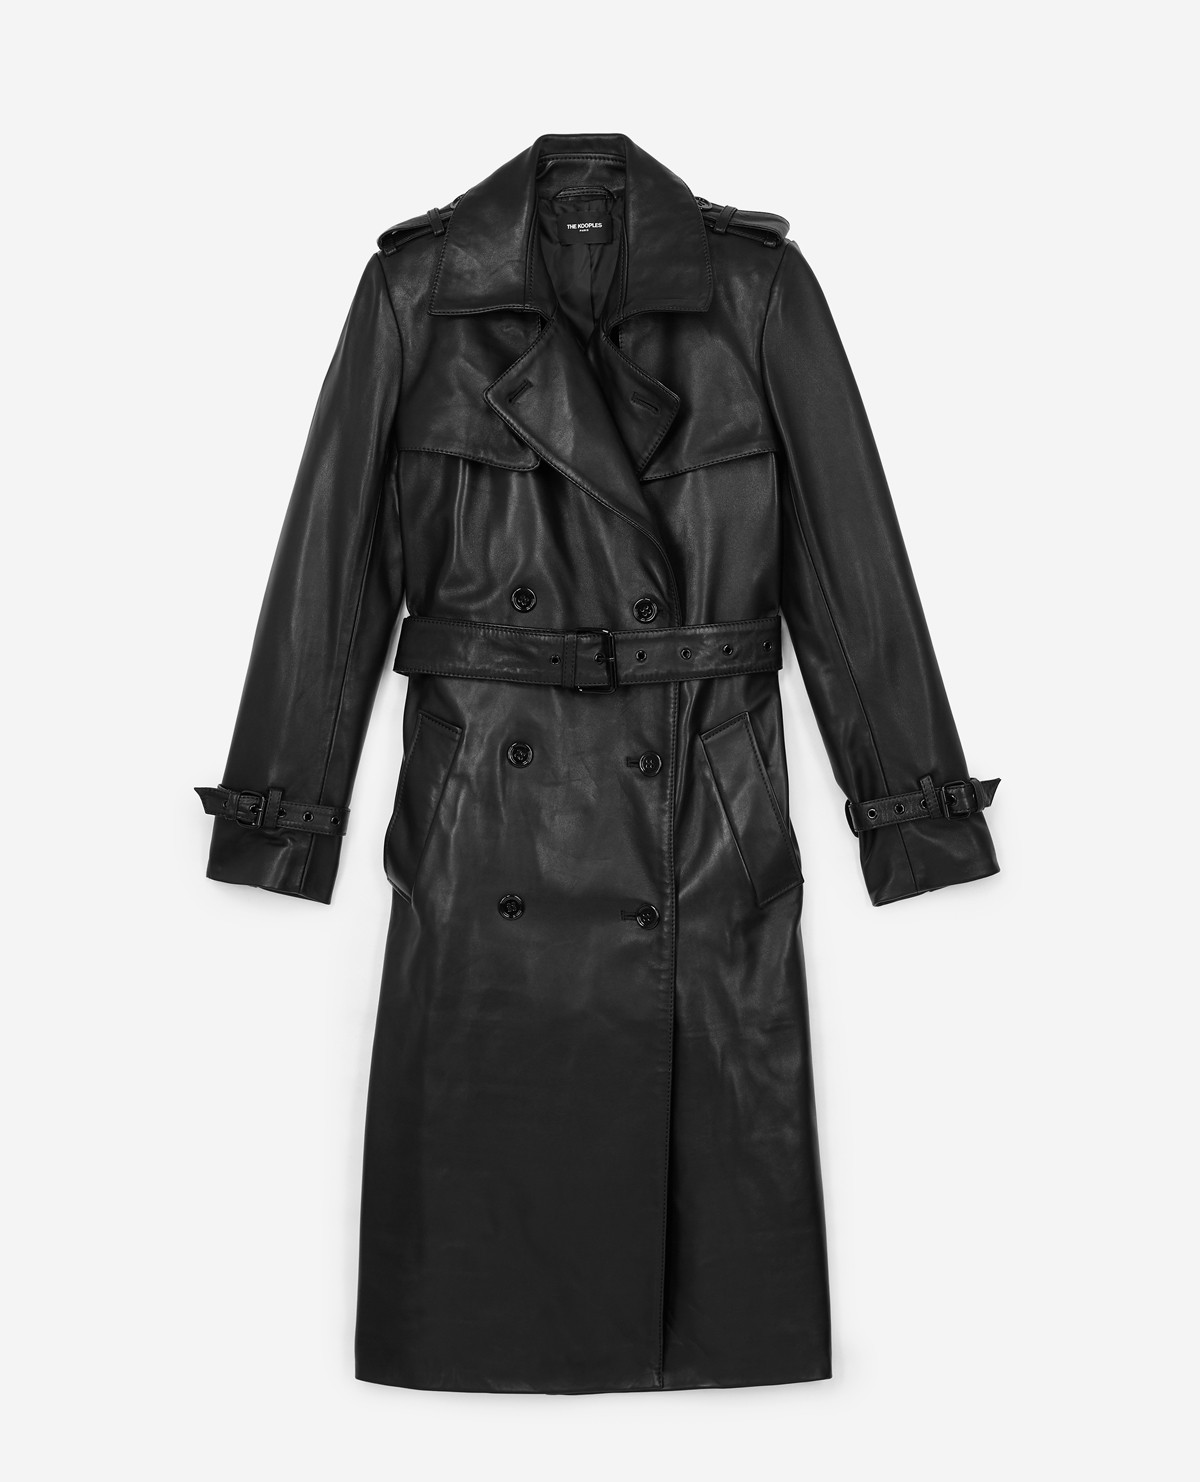 The Couples Black Leather Trench Coat